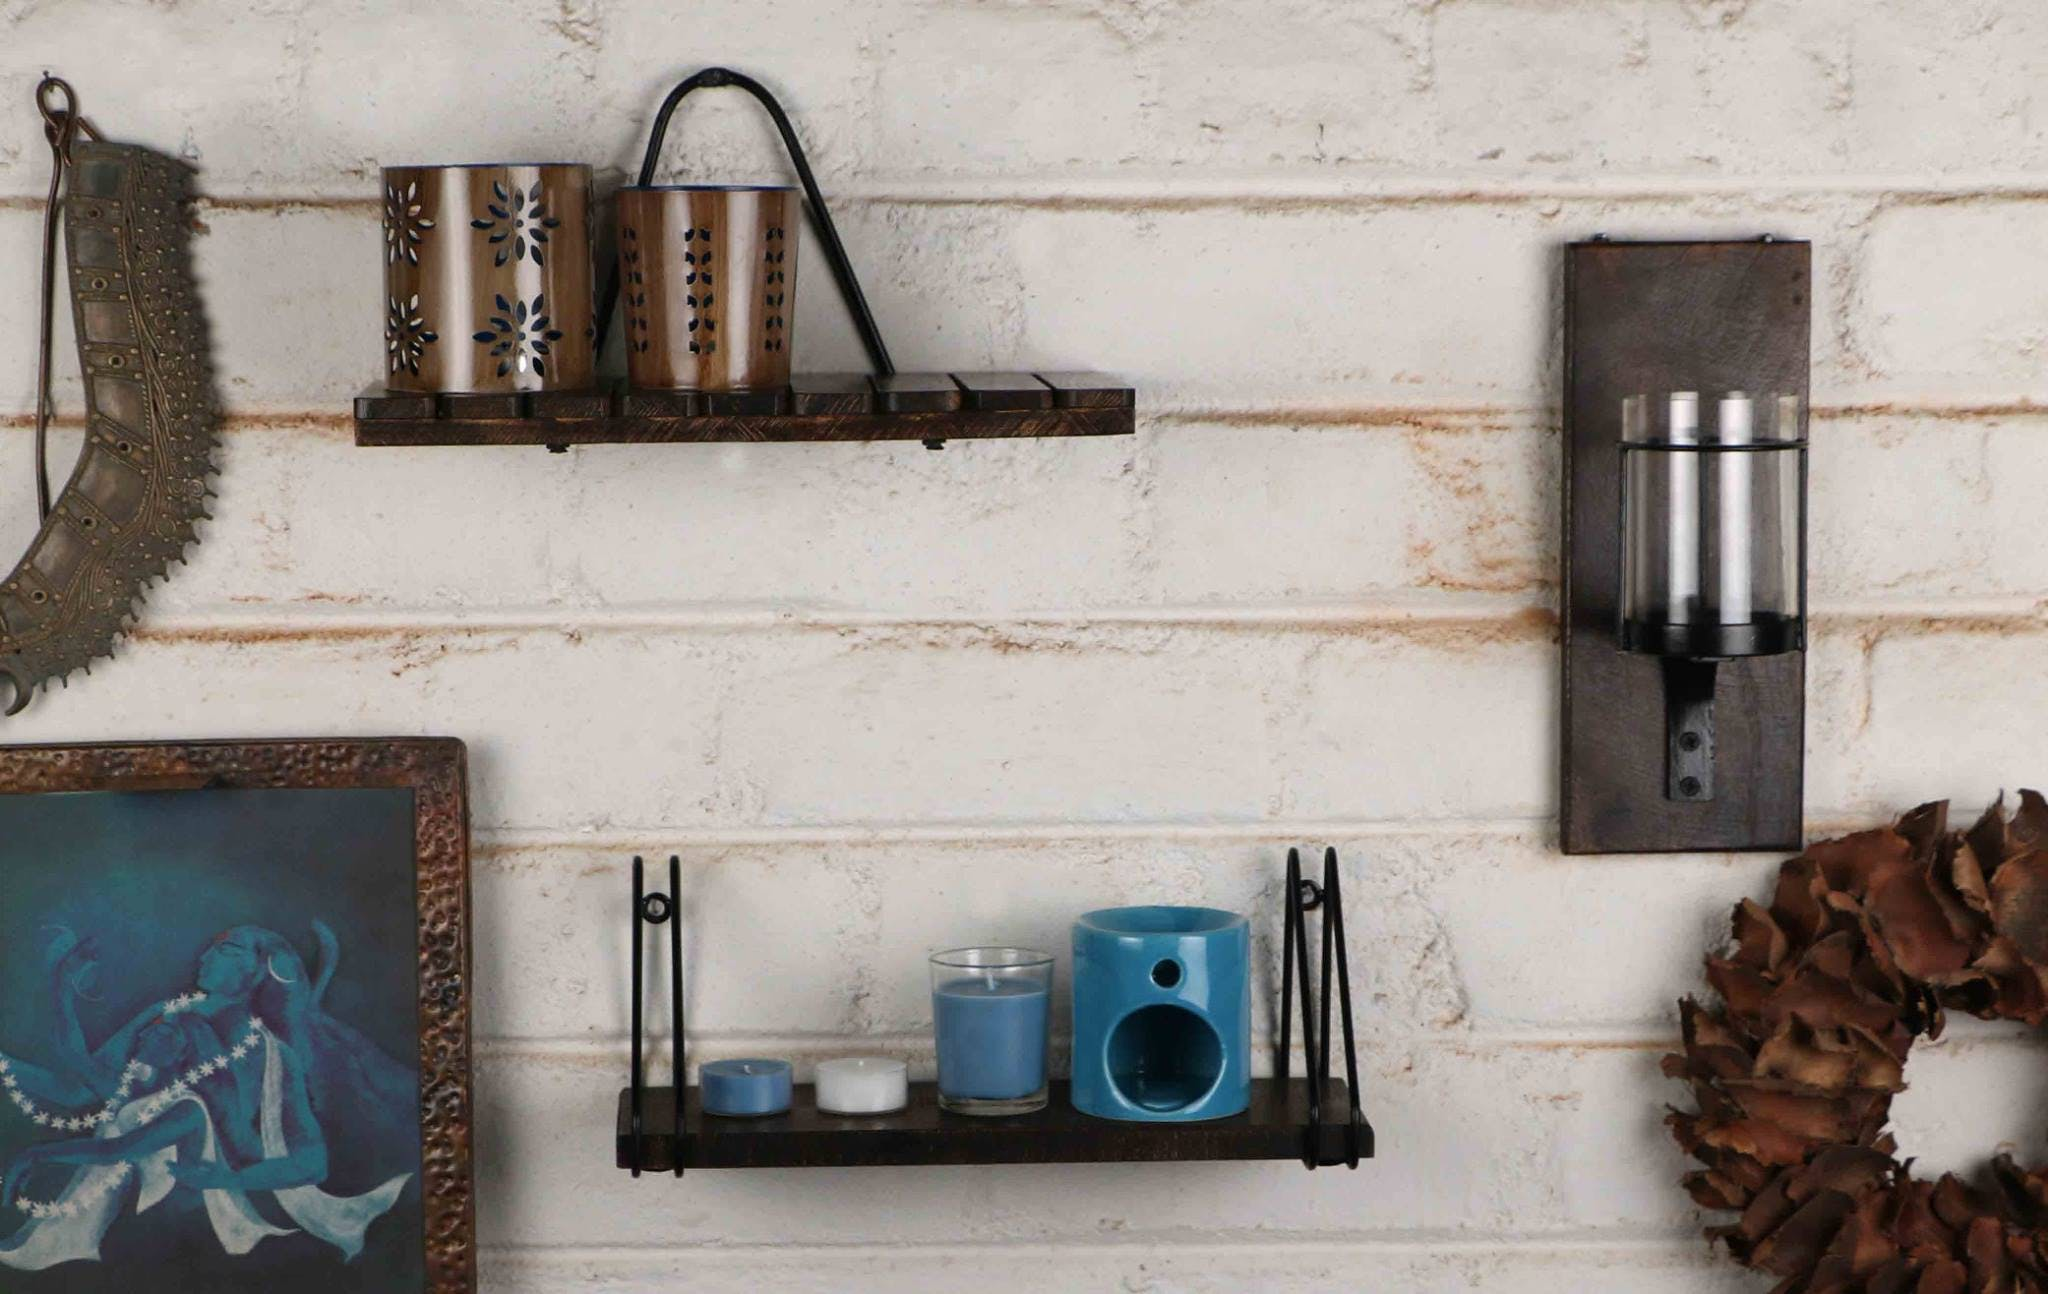 Wall,Shelf,Shelving,Room,Furniture,Still life photography